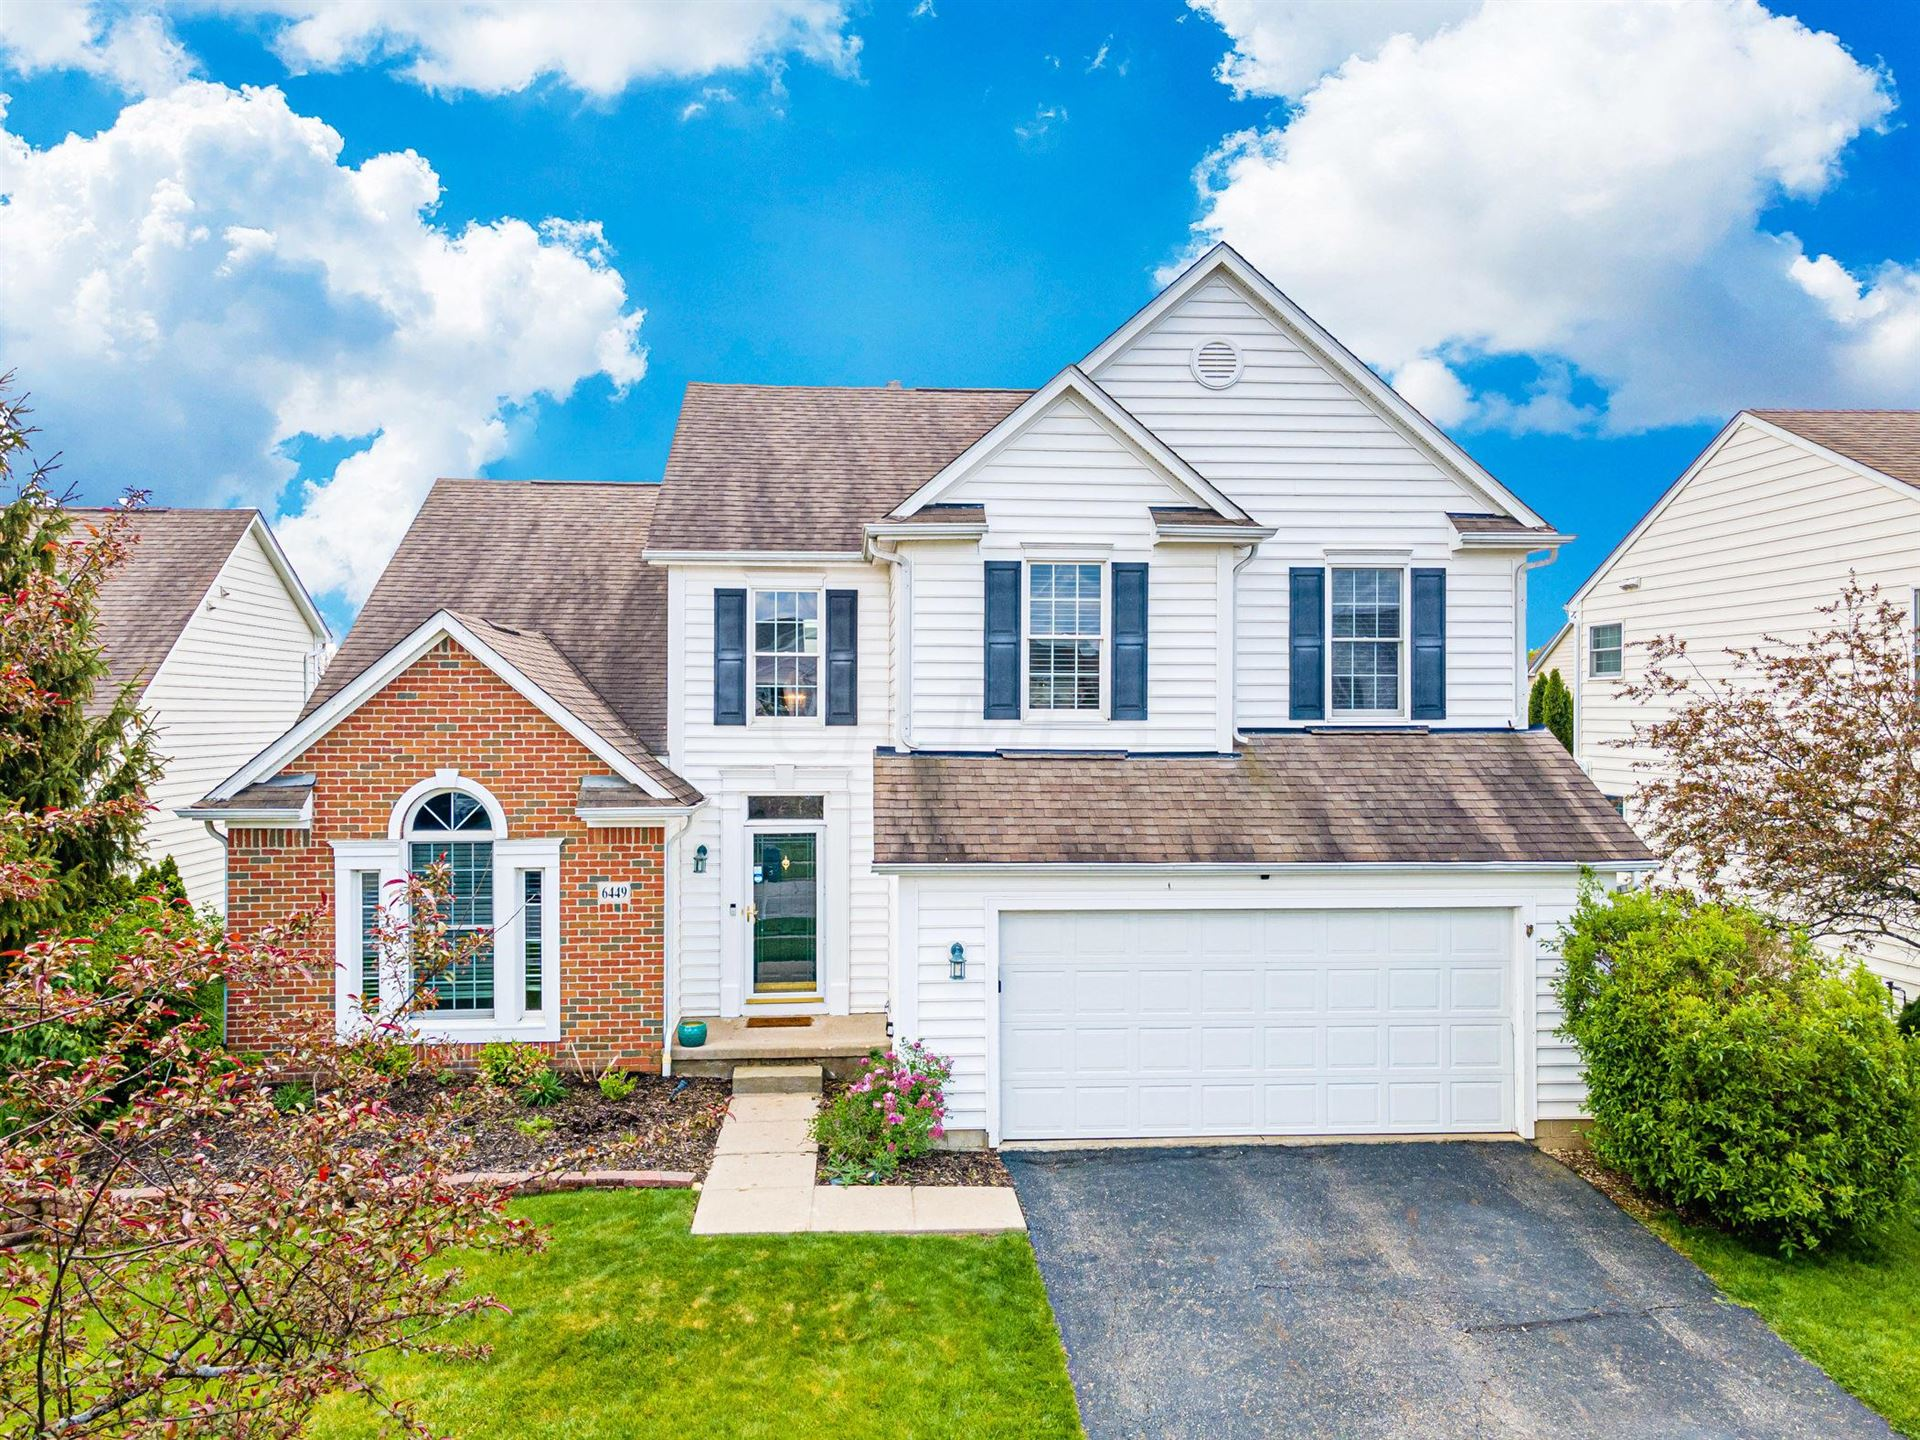 Photo of 6449 Herb Garden Court, New Albany, OH 43054 (MLS # 221015724)